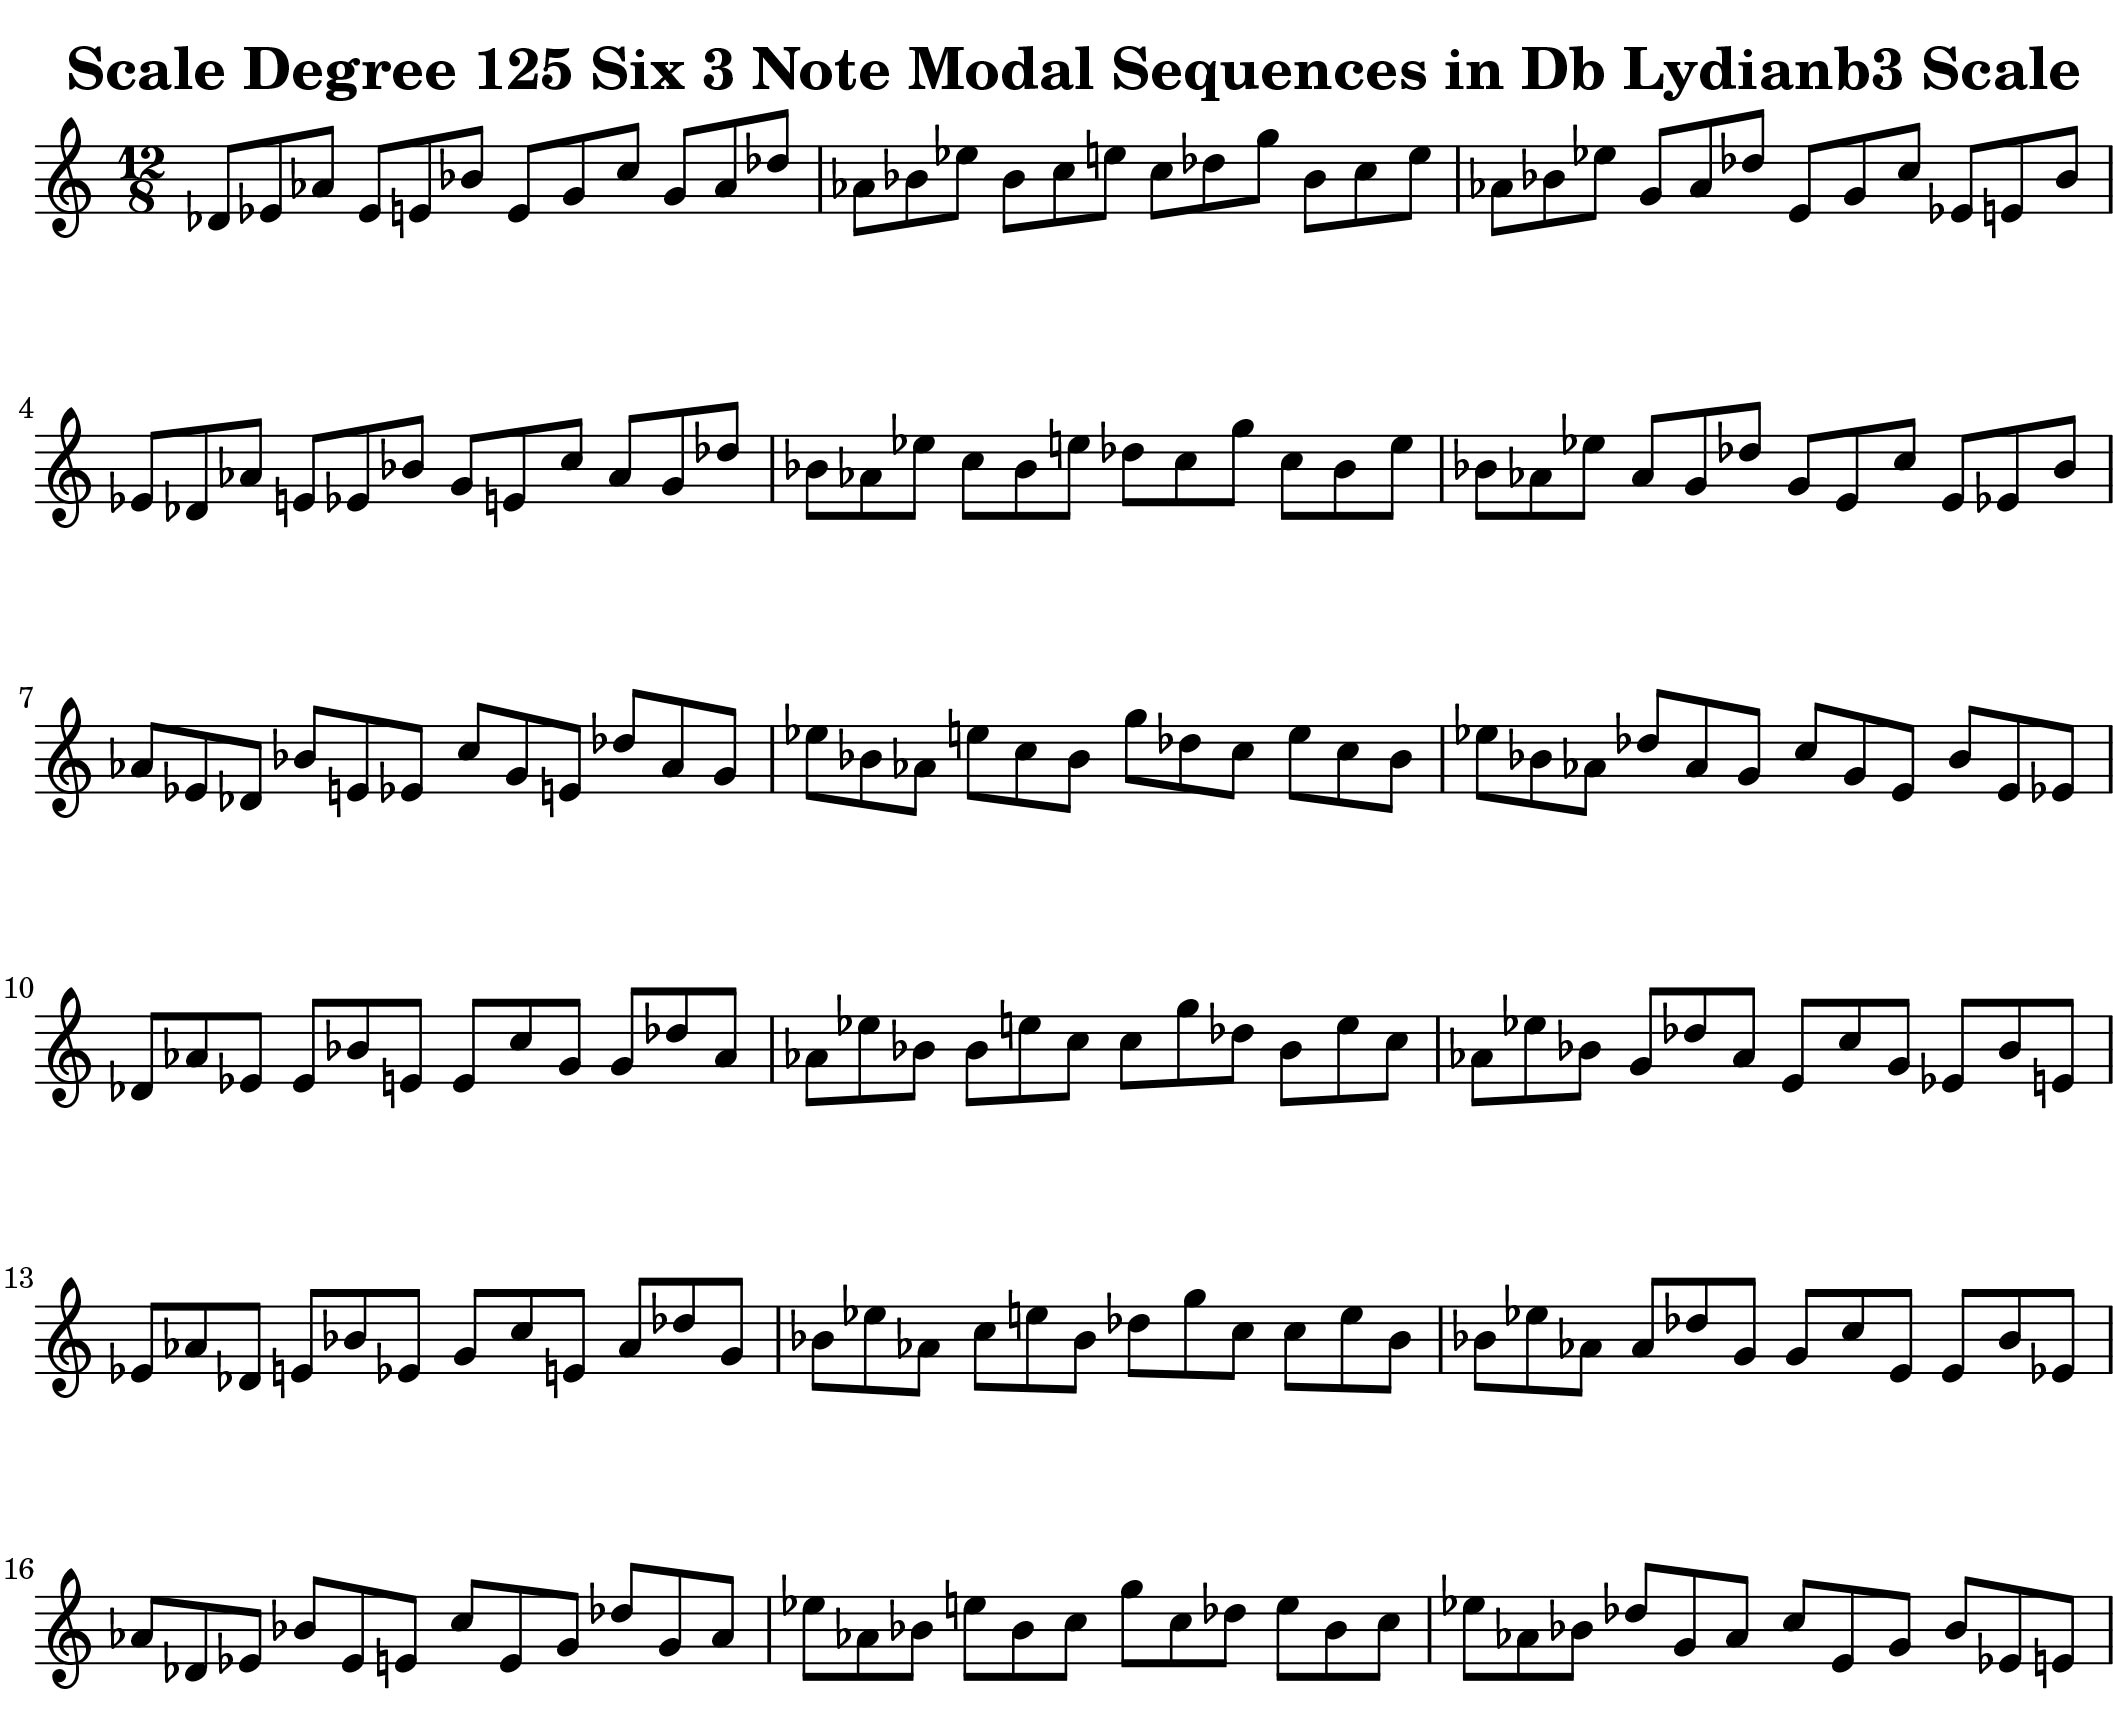 Db Lydian b3 Scale Modal Sequencing 3 Note Group 3 for all instrumentalist by Bruce Arnold for Muse Eek Publishing Company